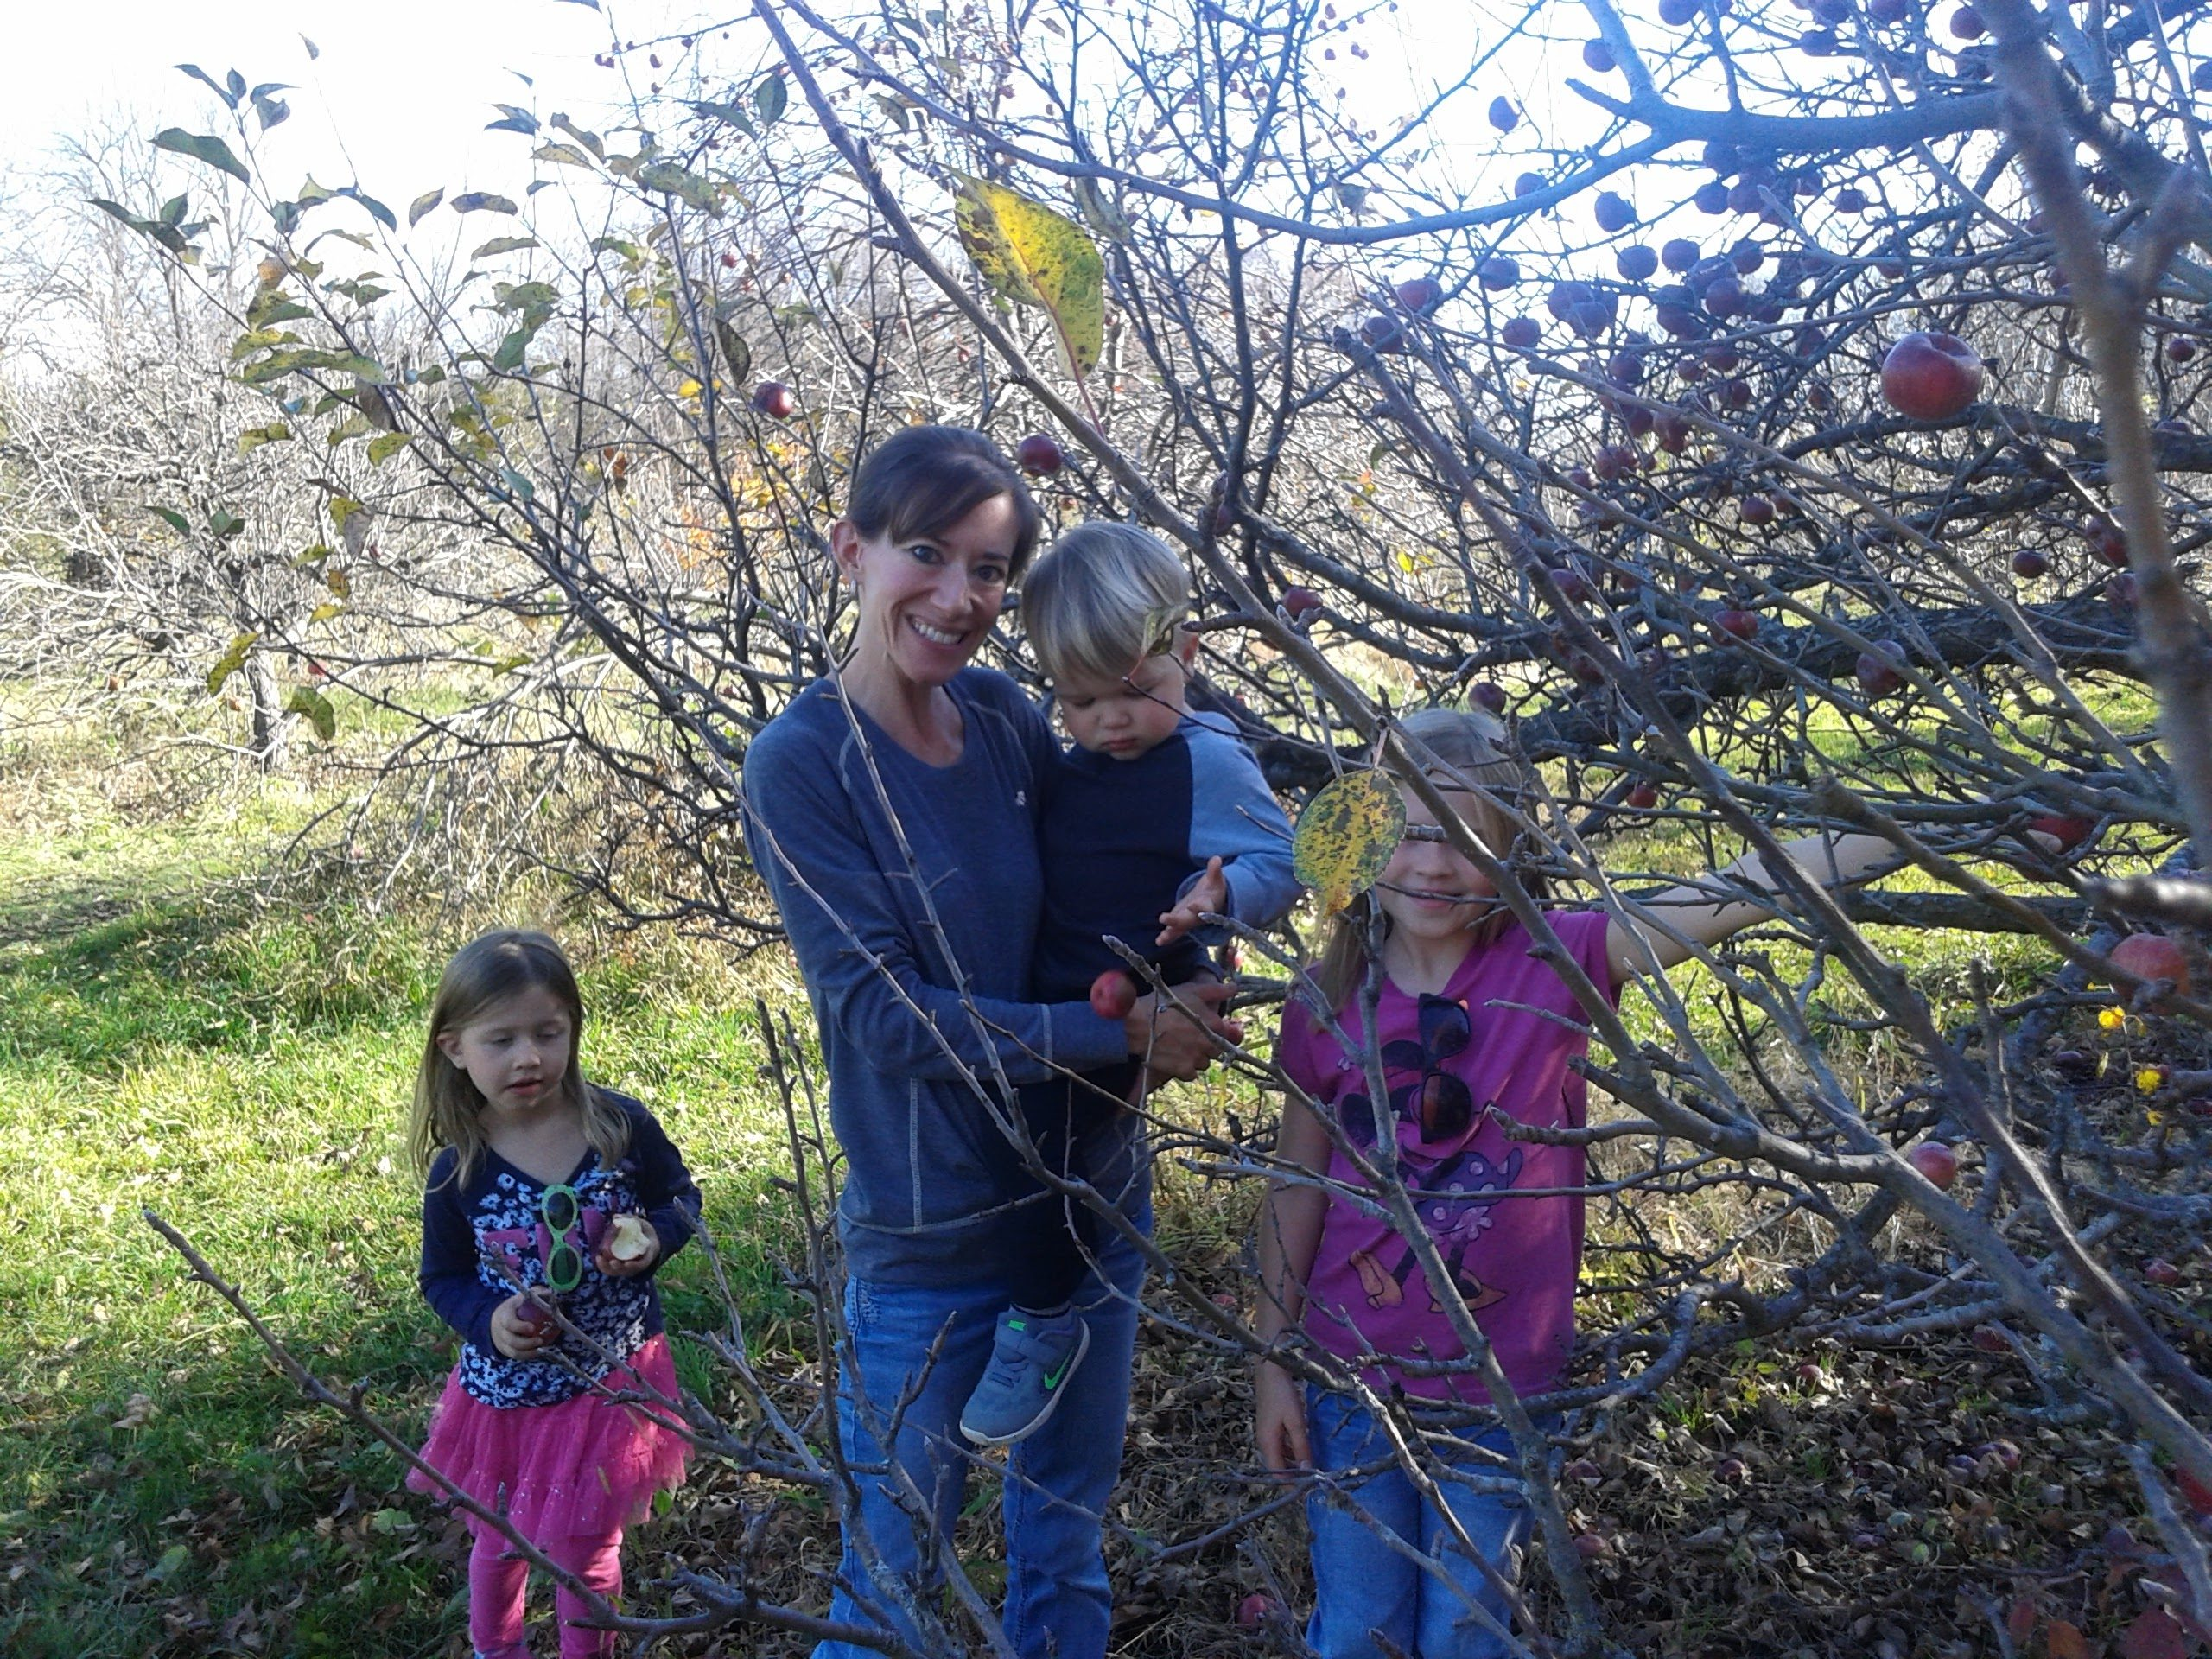 Family fun picking apples